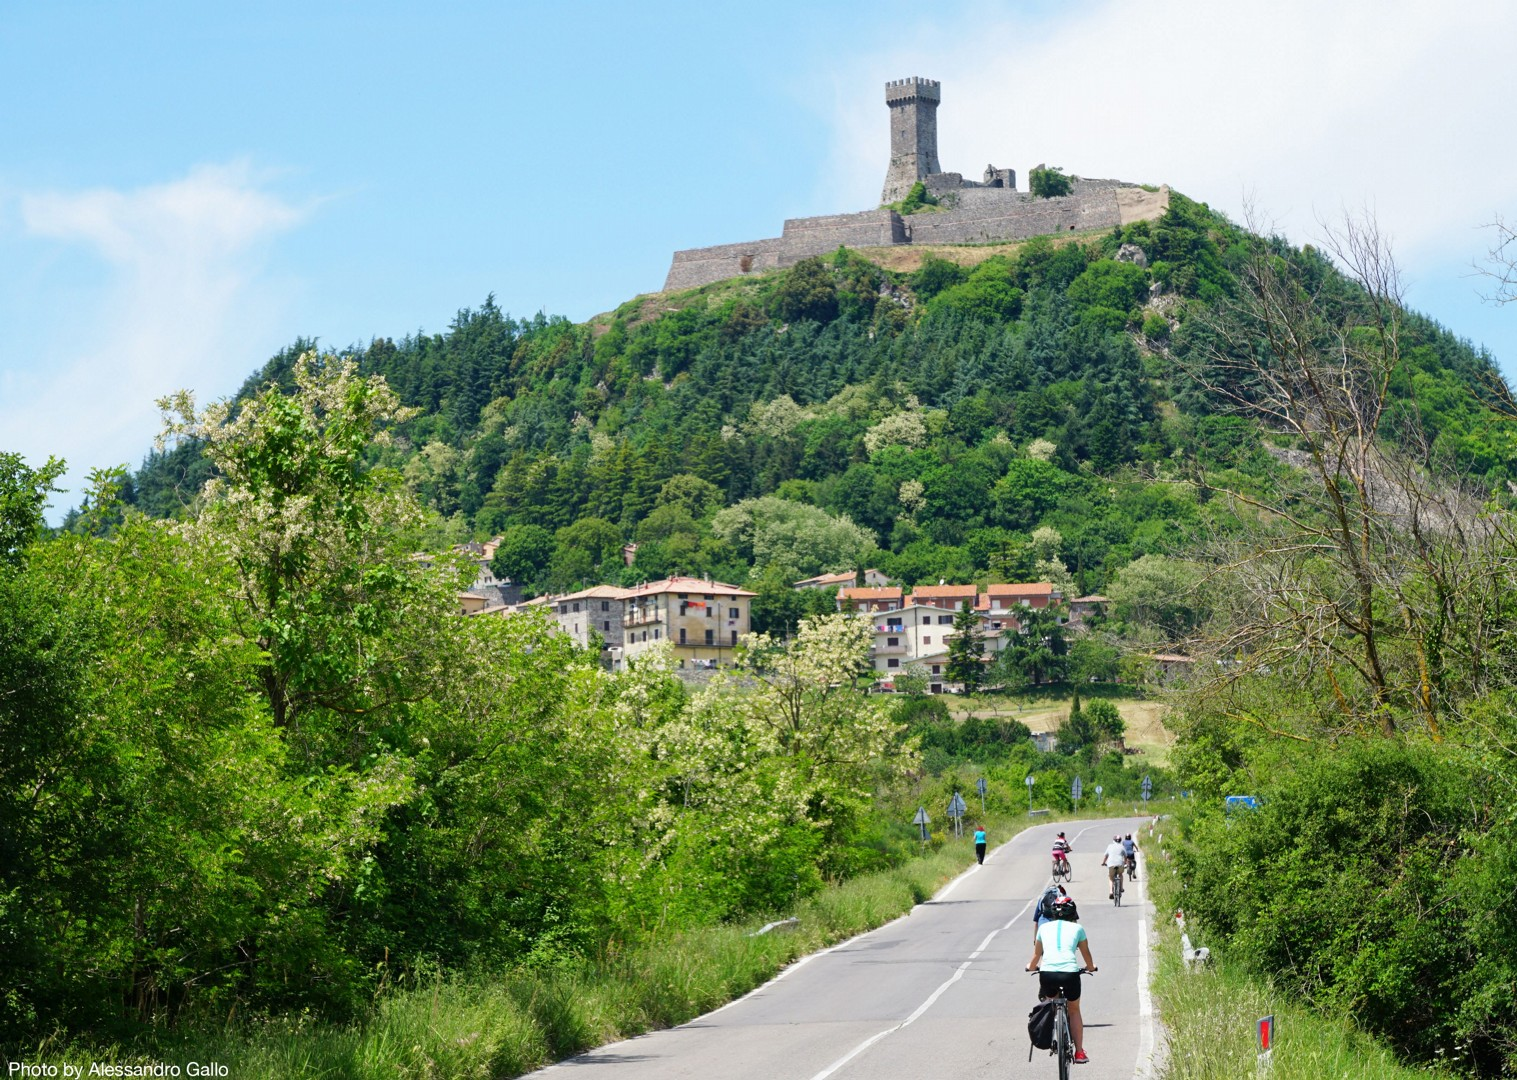 Guided-Leisure-Cycling-Holiday-Italy-Via-Francigena-Tuscany-to-Rome - Italy - Via Francigena (Tuscany to Rome) - Guided Leisure Cycling Holiday - Leisure Cycling